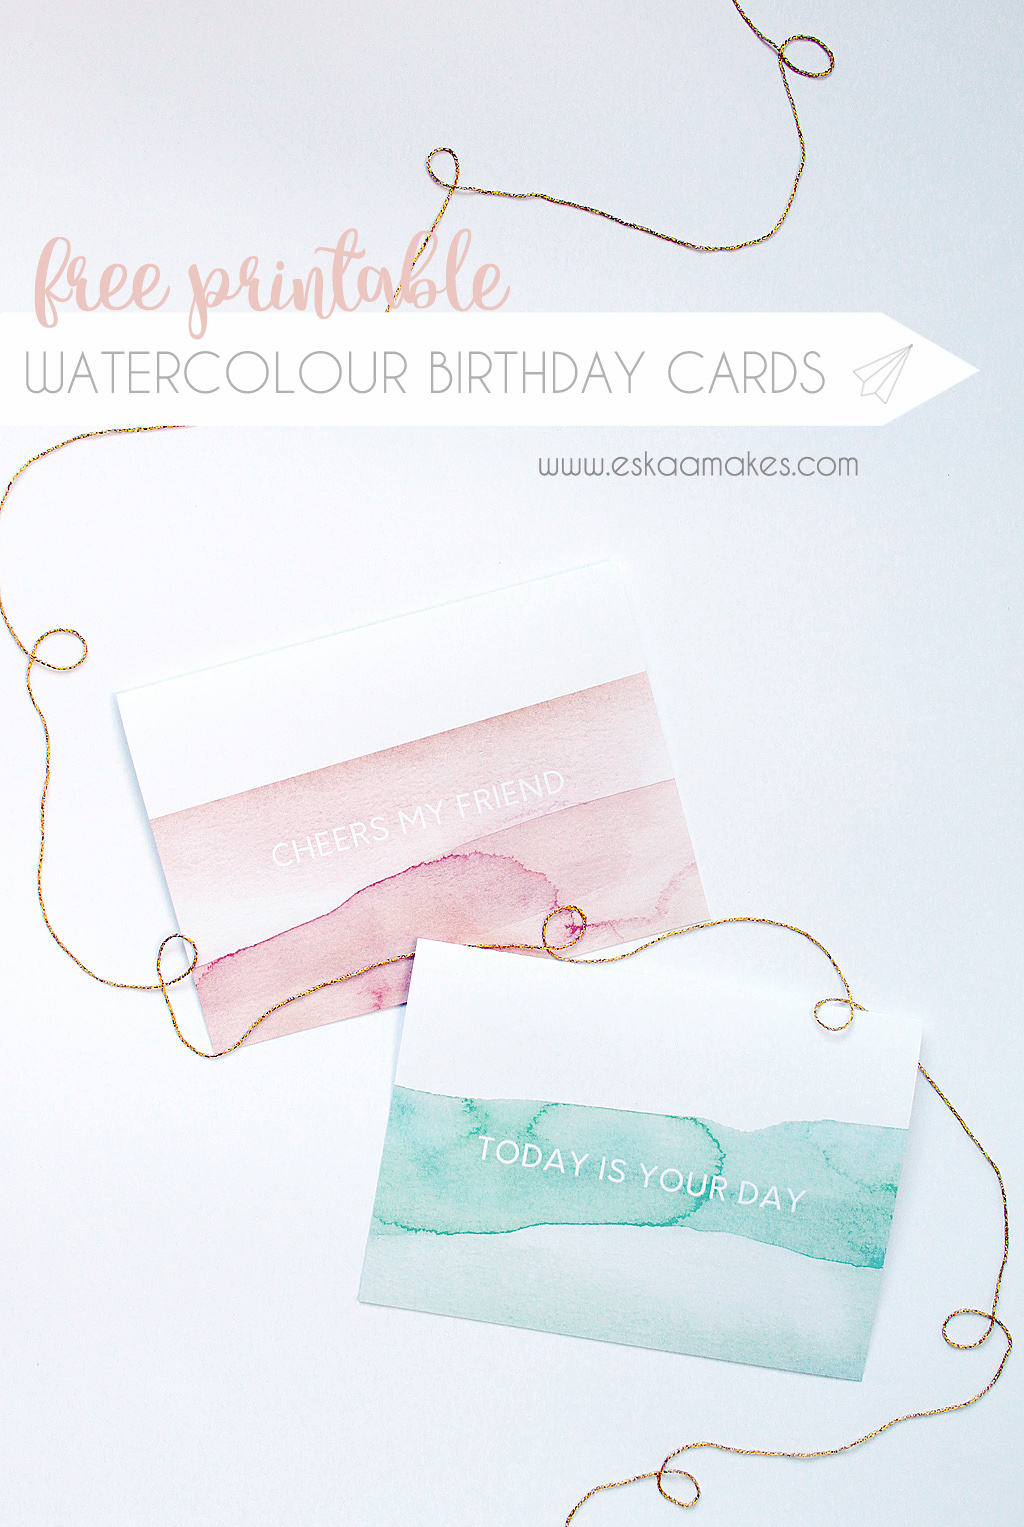 free printable watercolour birthday cards